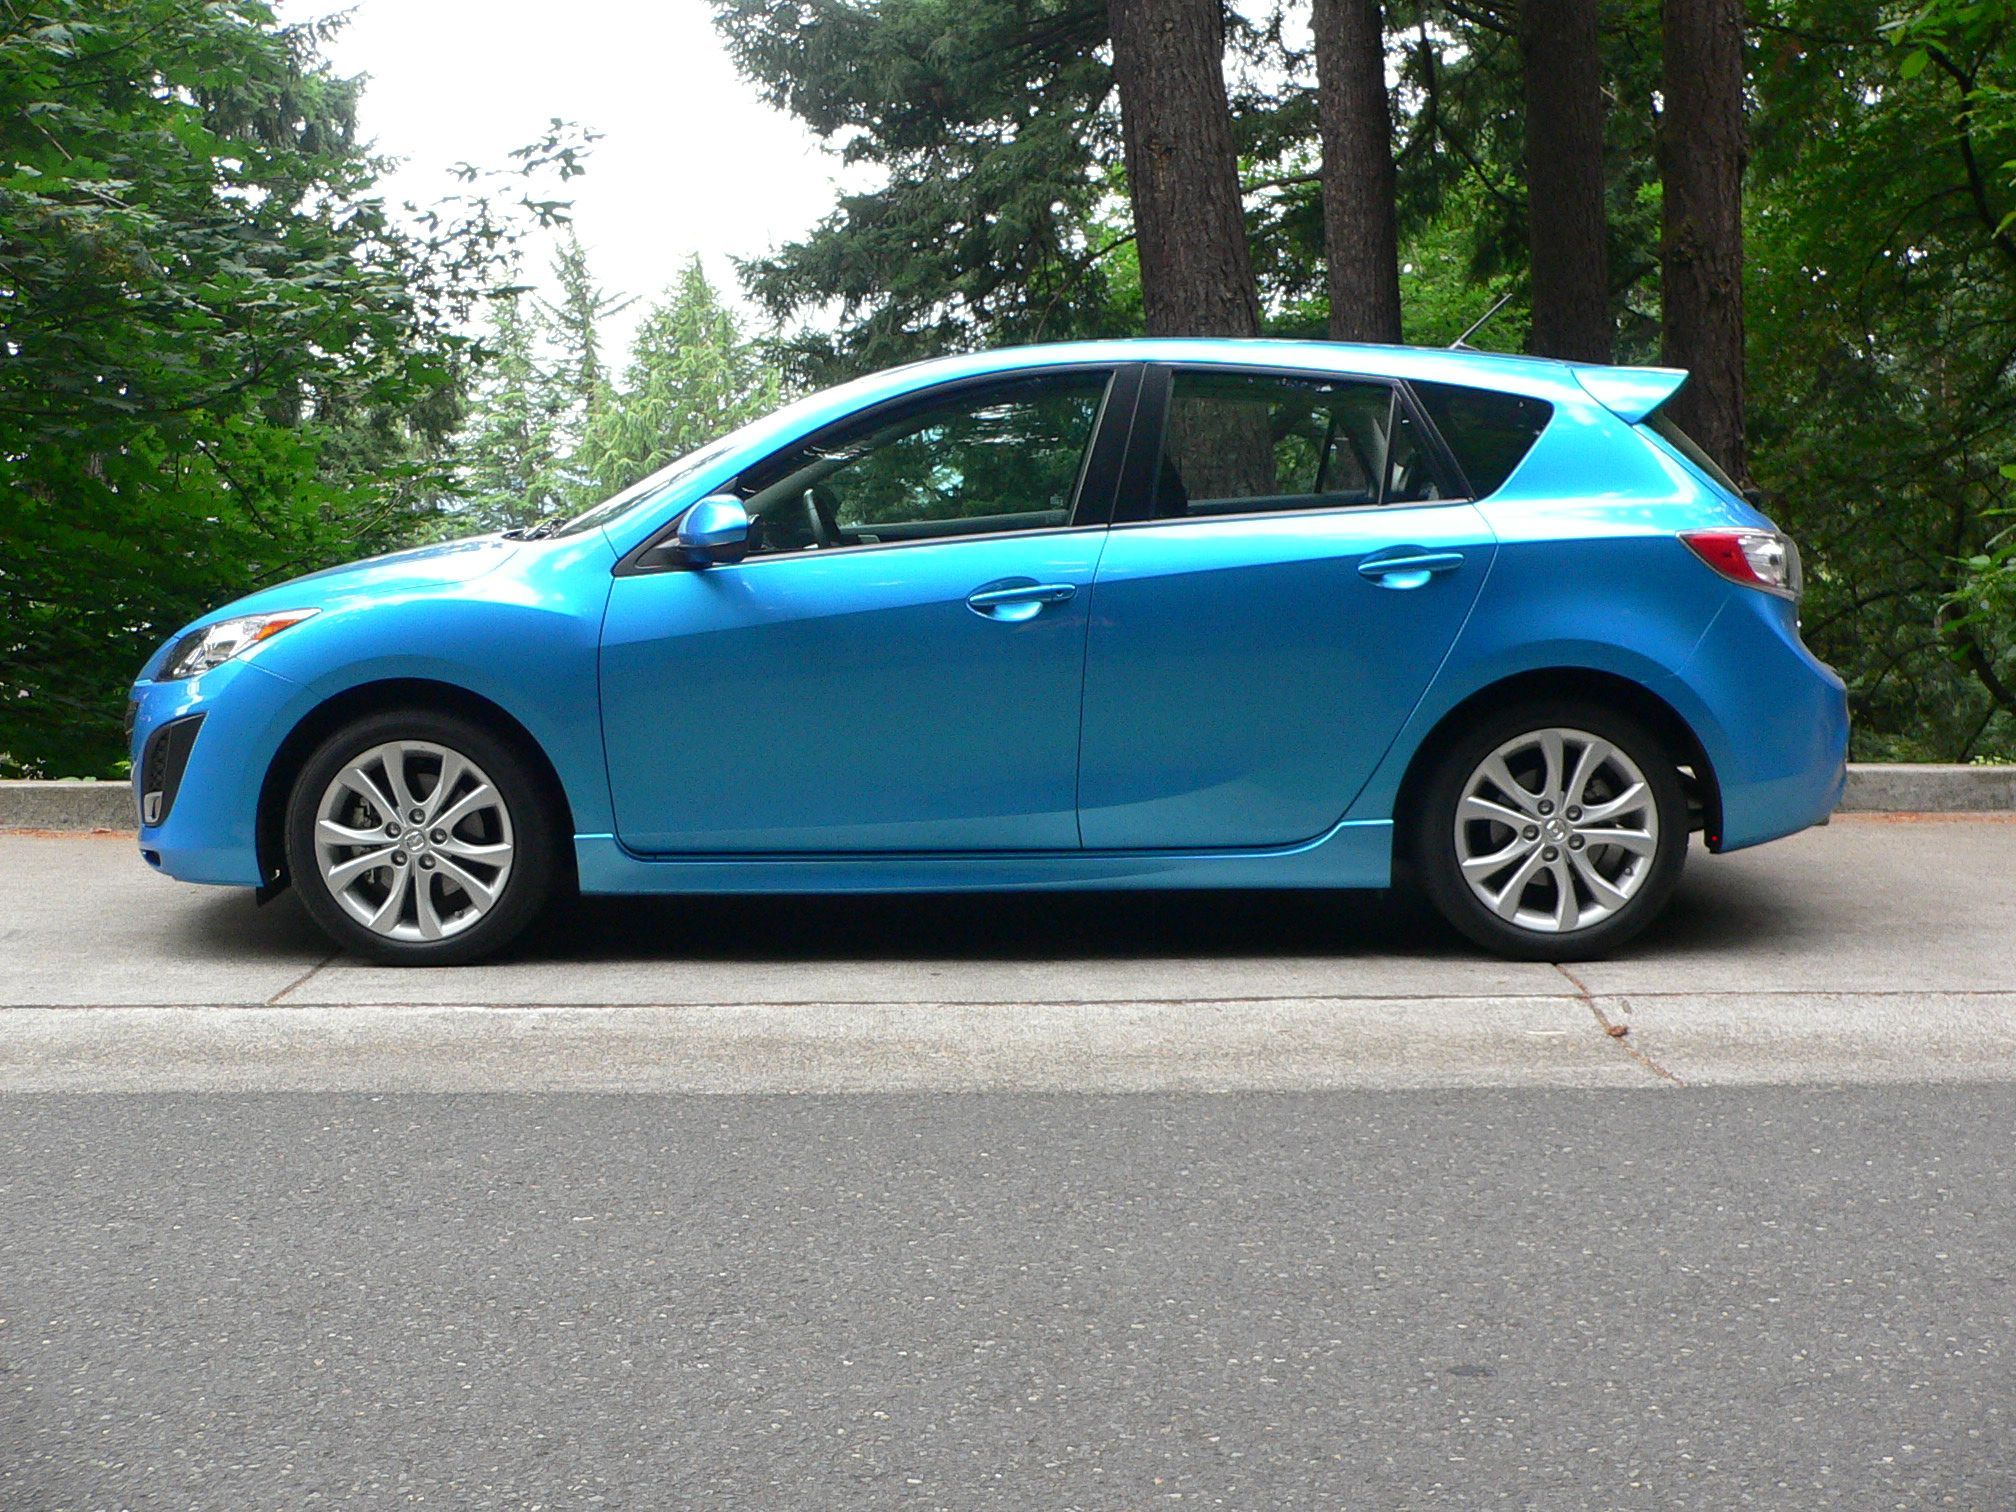 Pin By Carsinreviews On Car Makes Mazda 3 Hatchback